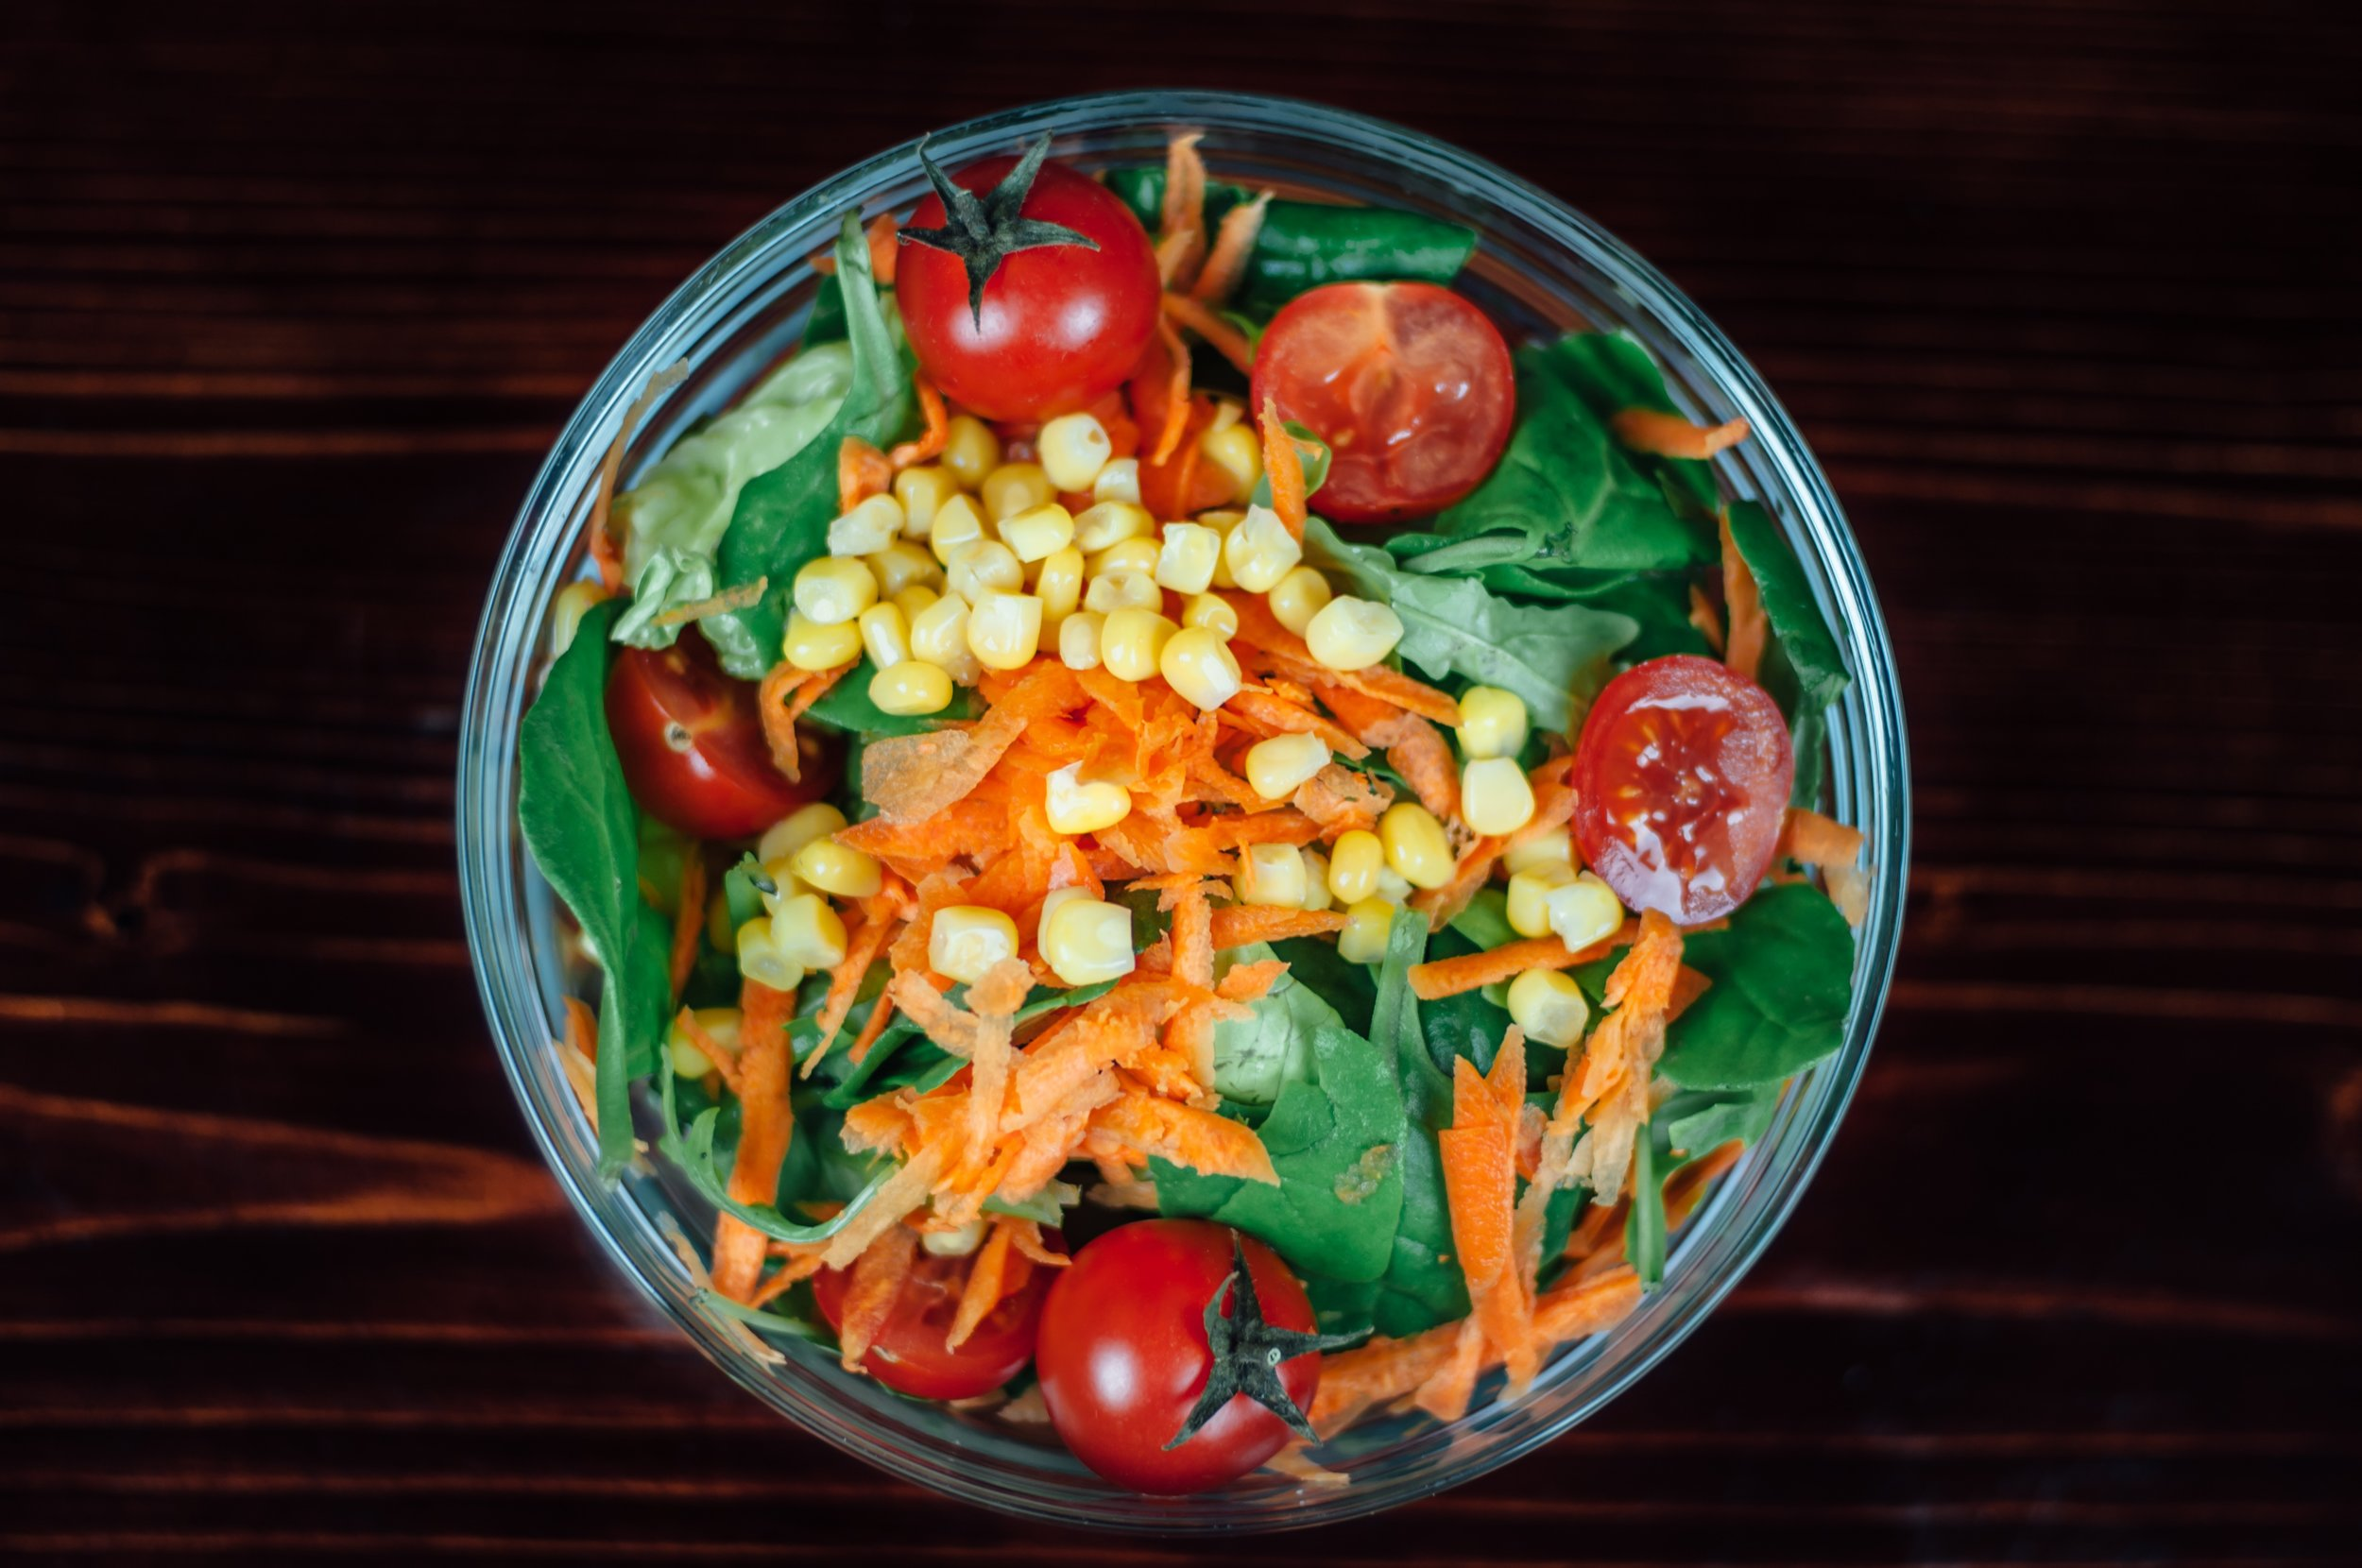 Salad - How to eat healthy without breaking the bank